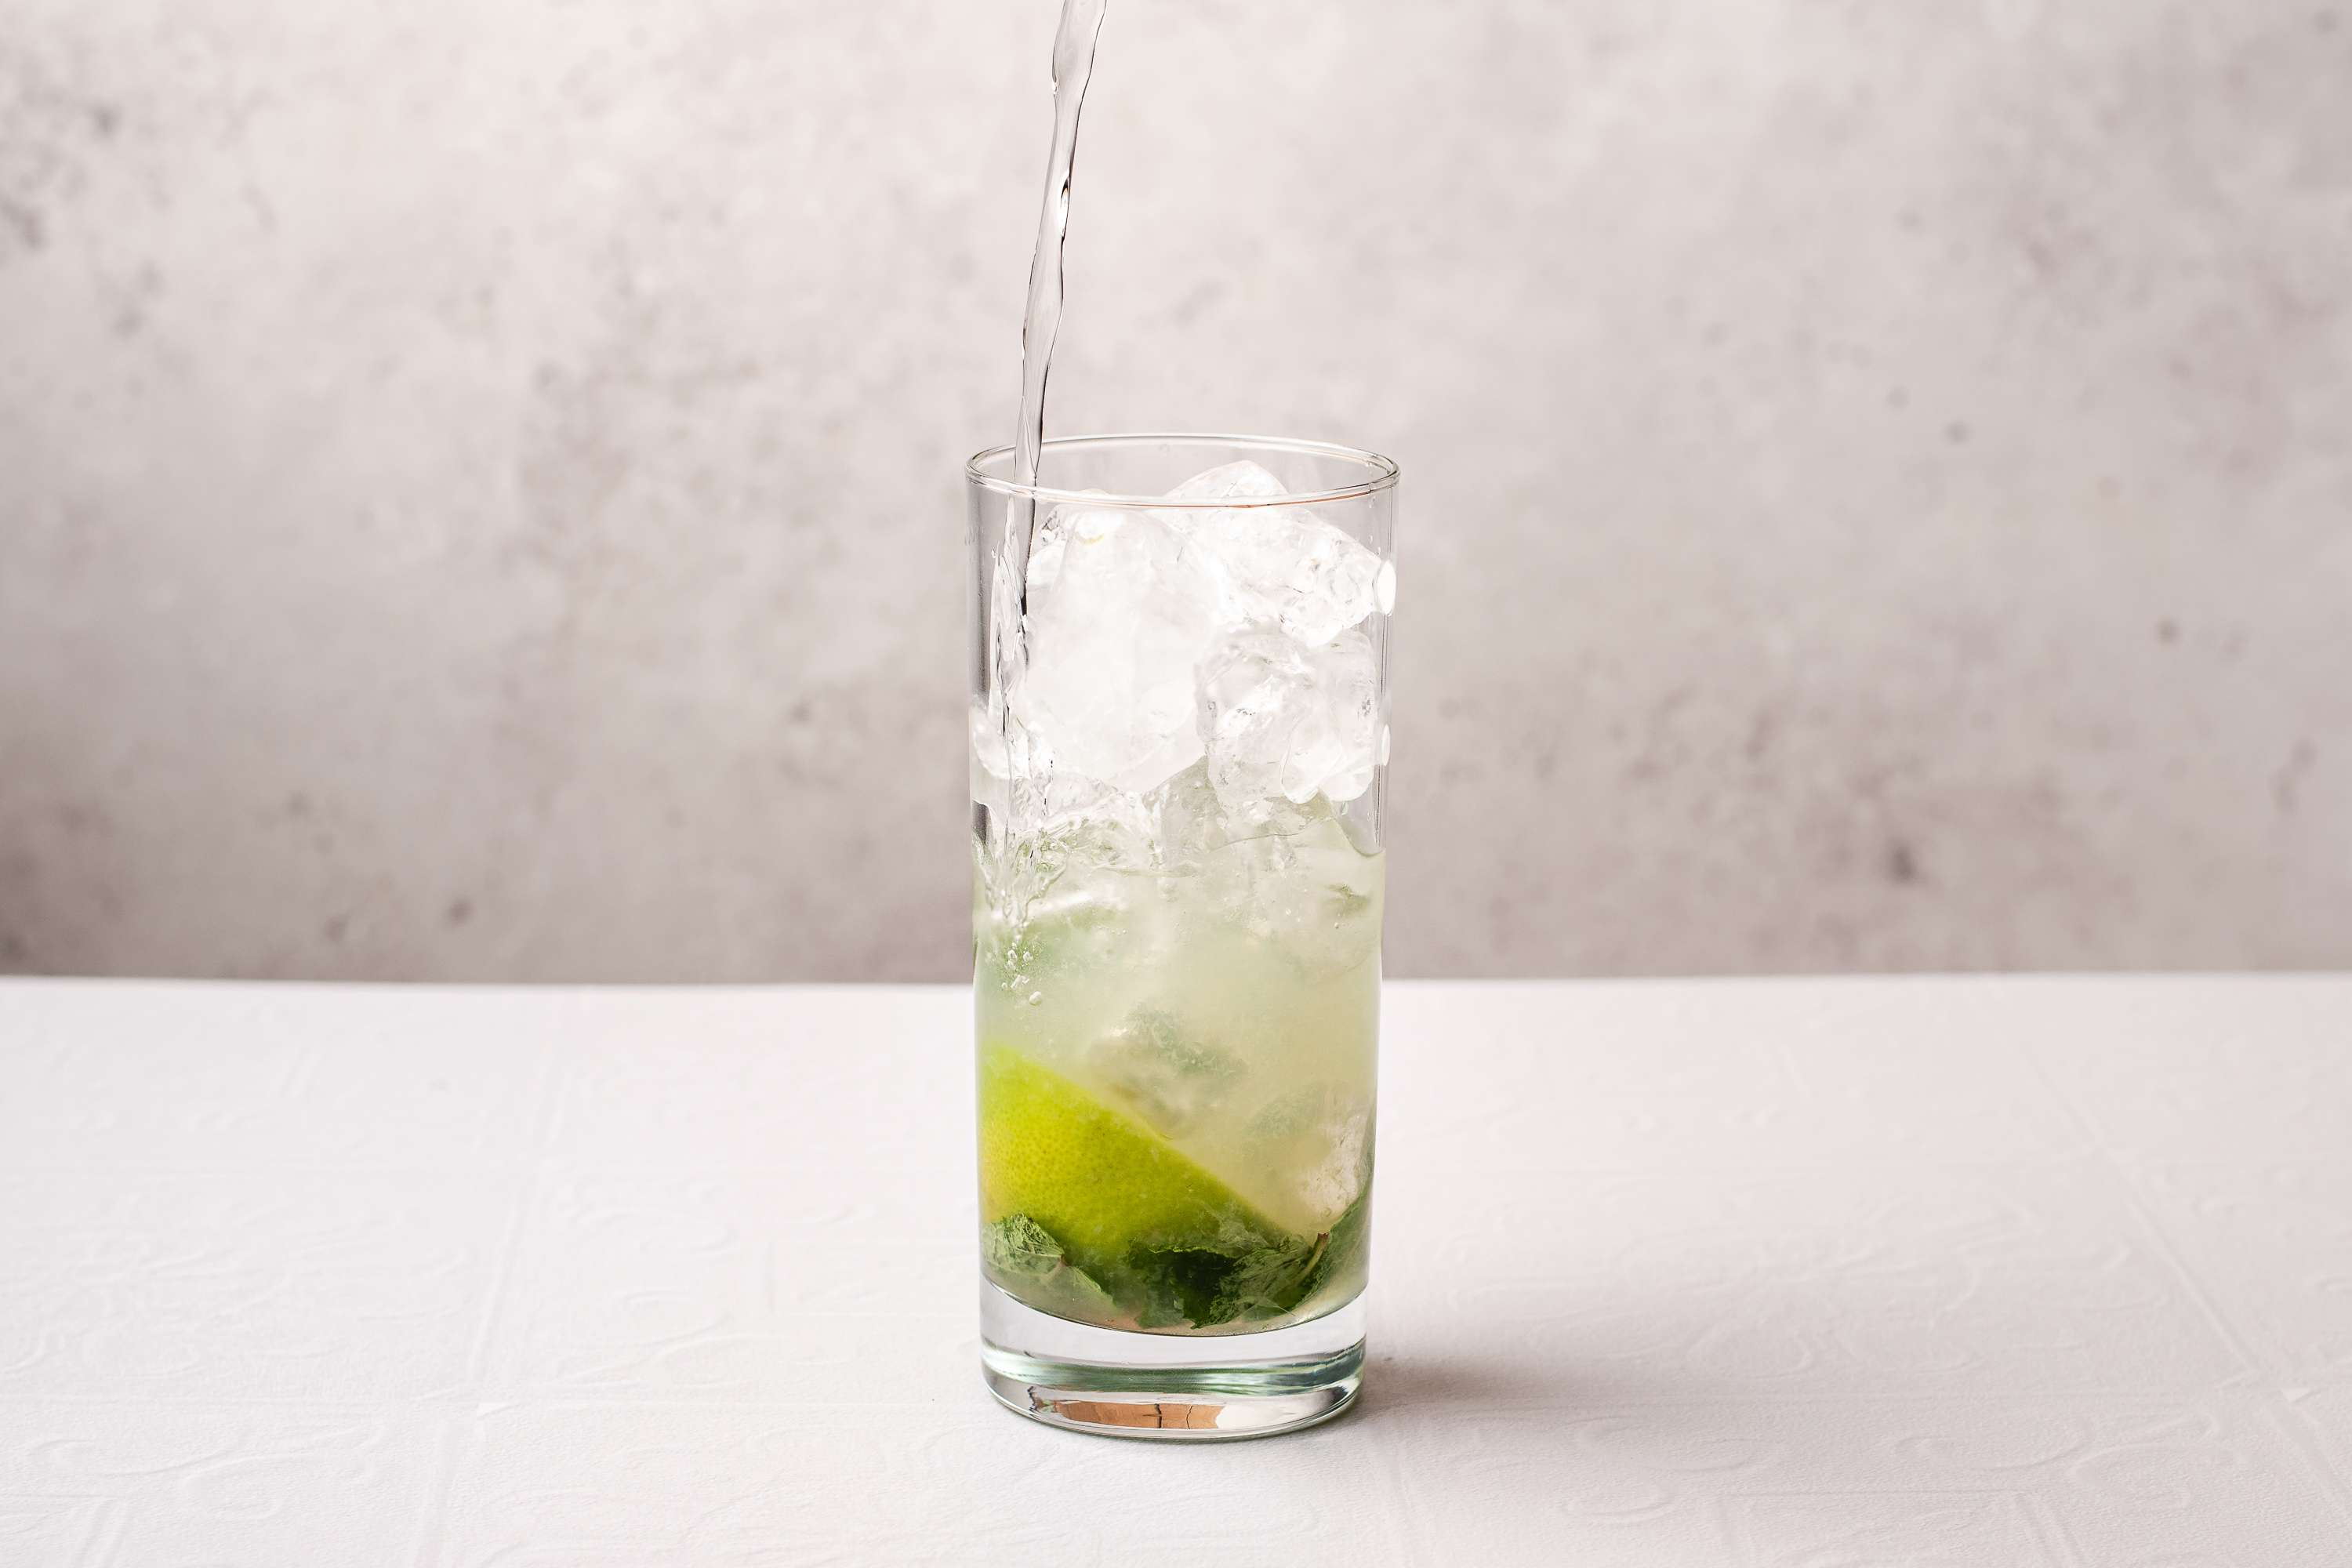 add ice and soda to the glass